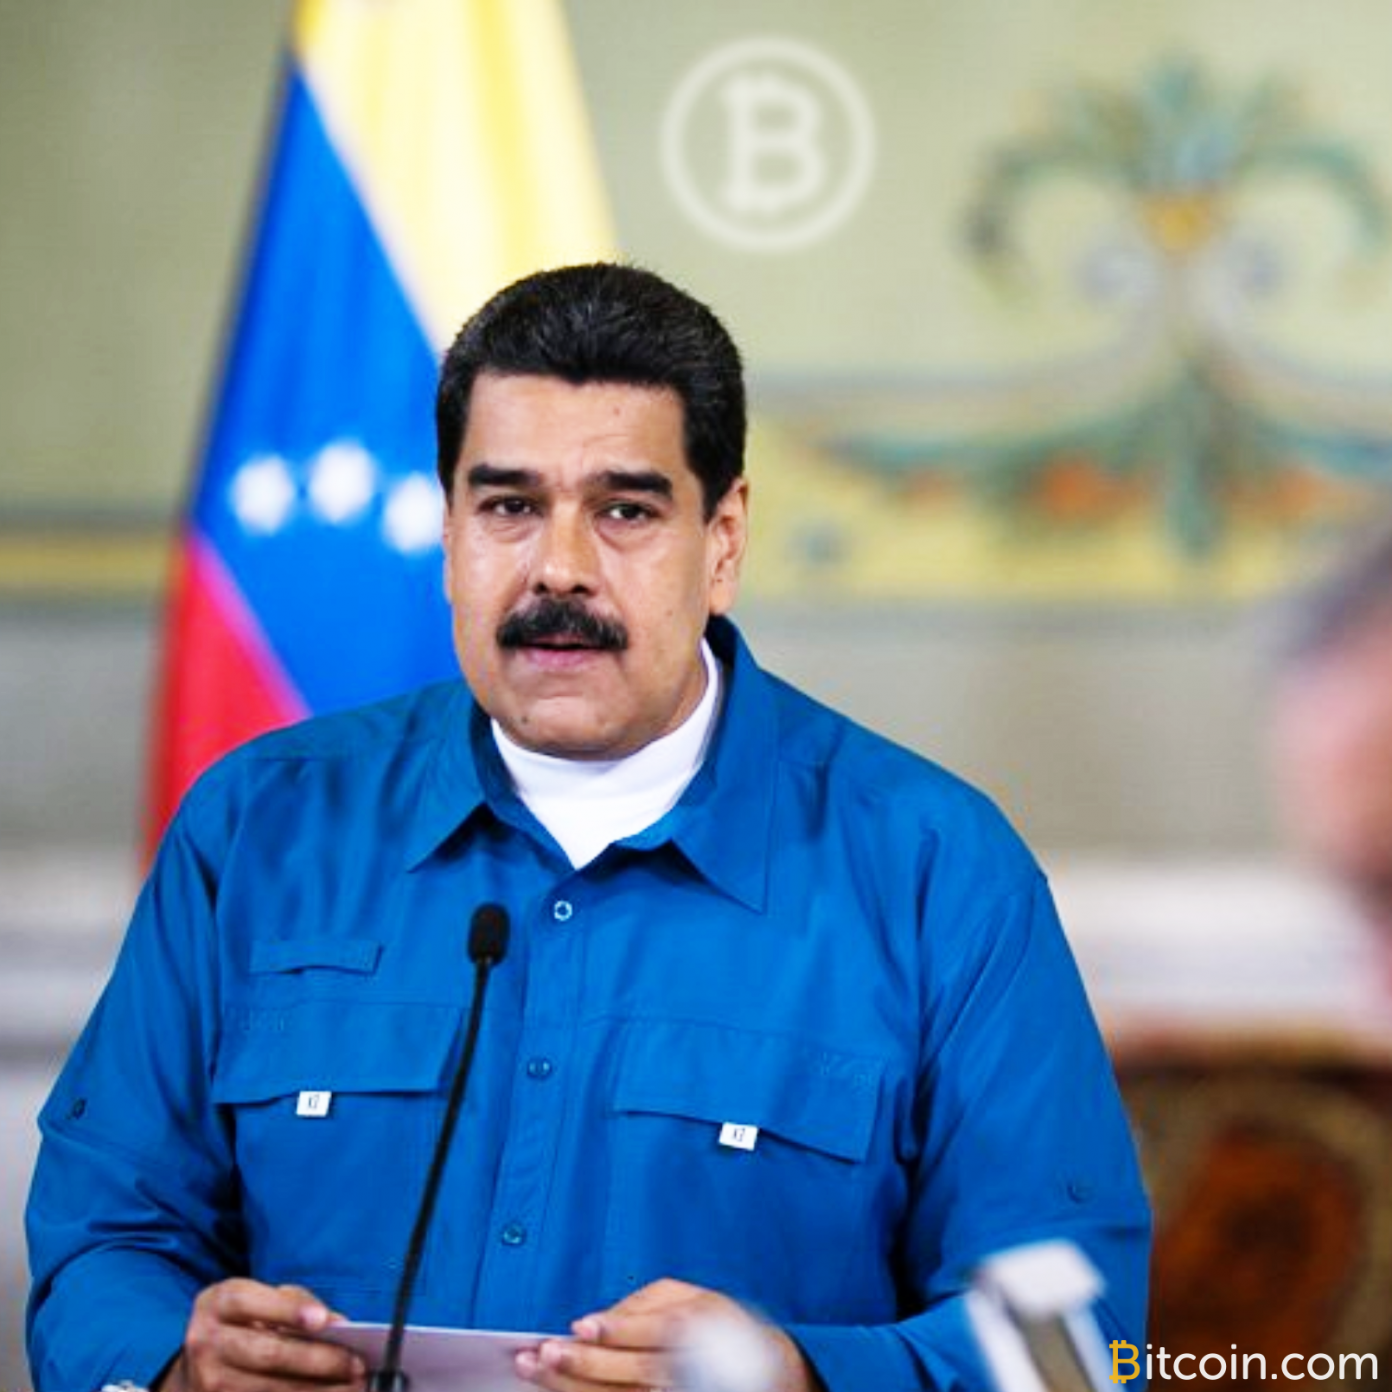 Venezuela Orders Government Services to Accept Any Cryptocurrency